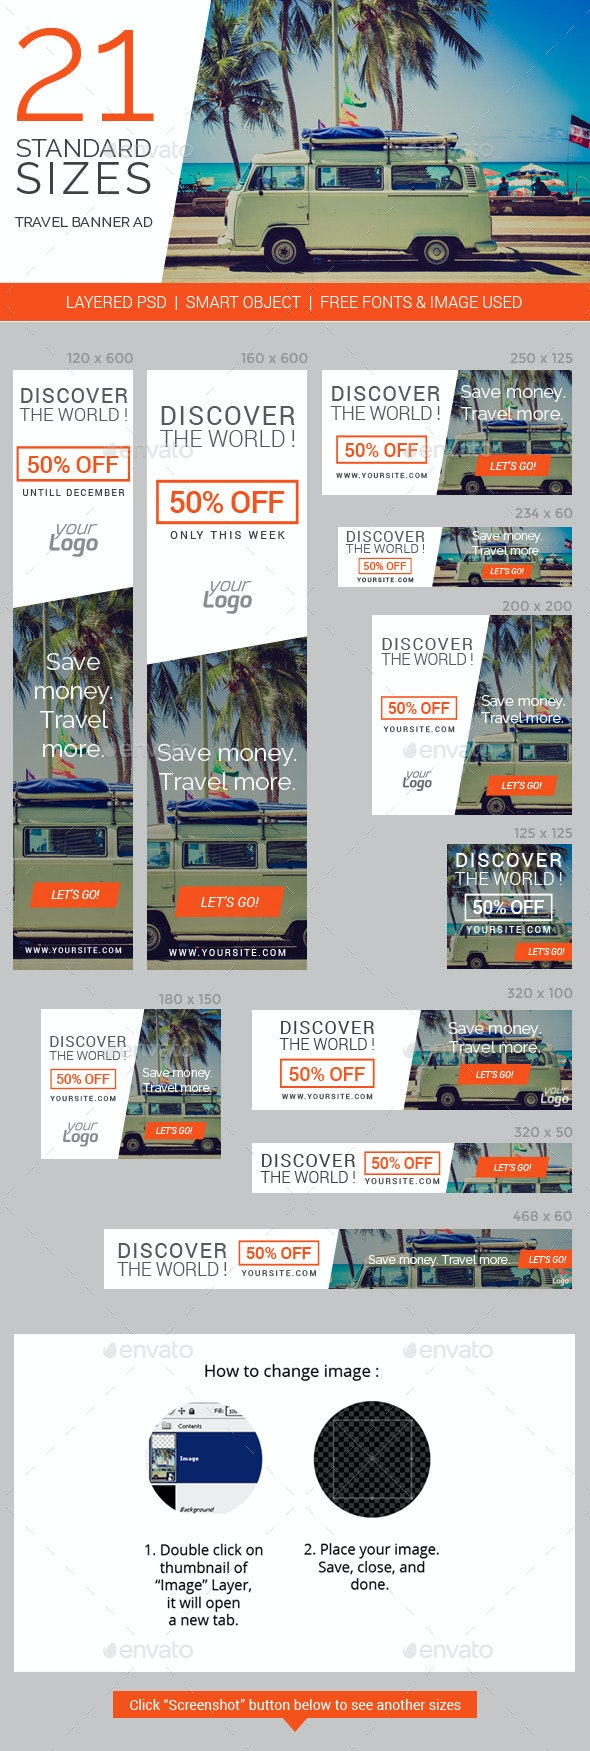 Travel & Vacation Web Ad Marketing Banners - Banners & Ads Web Elements